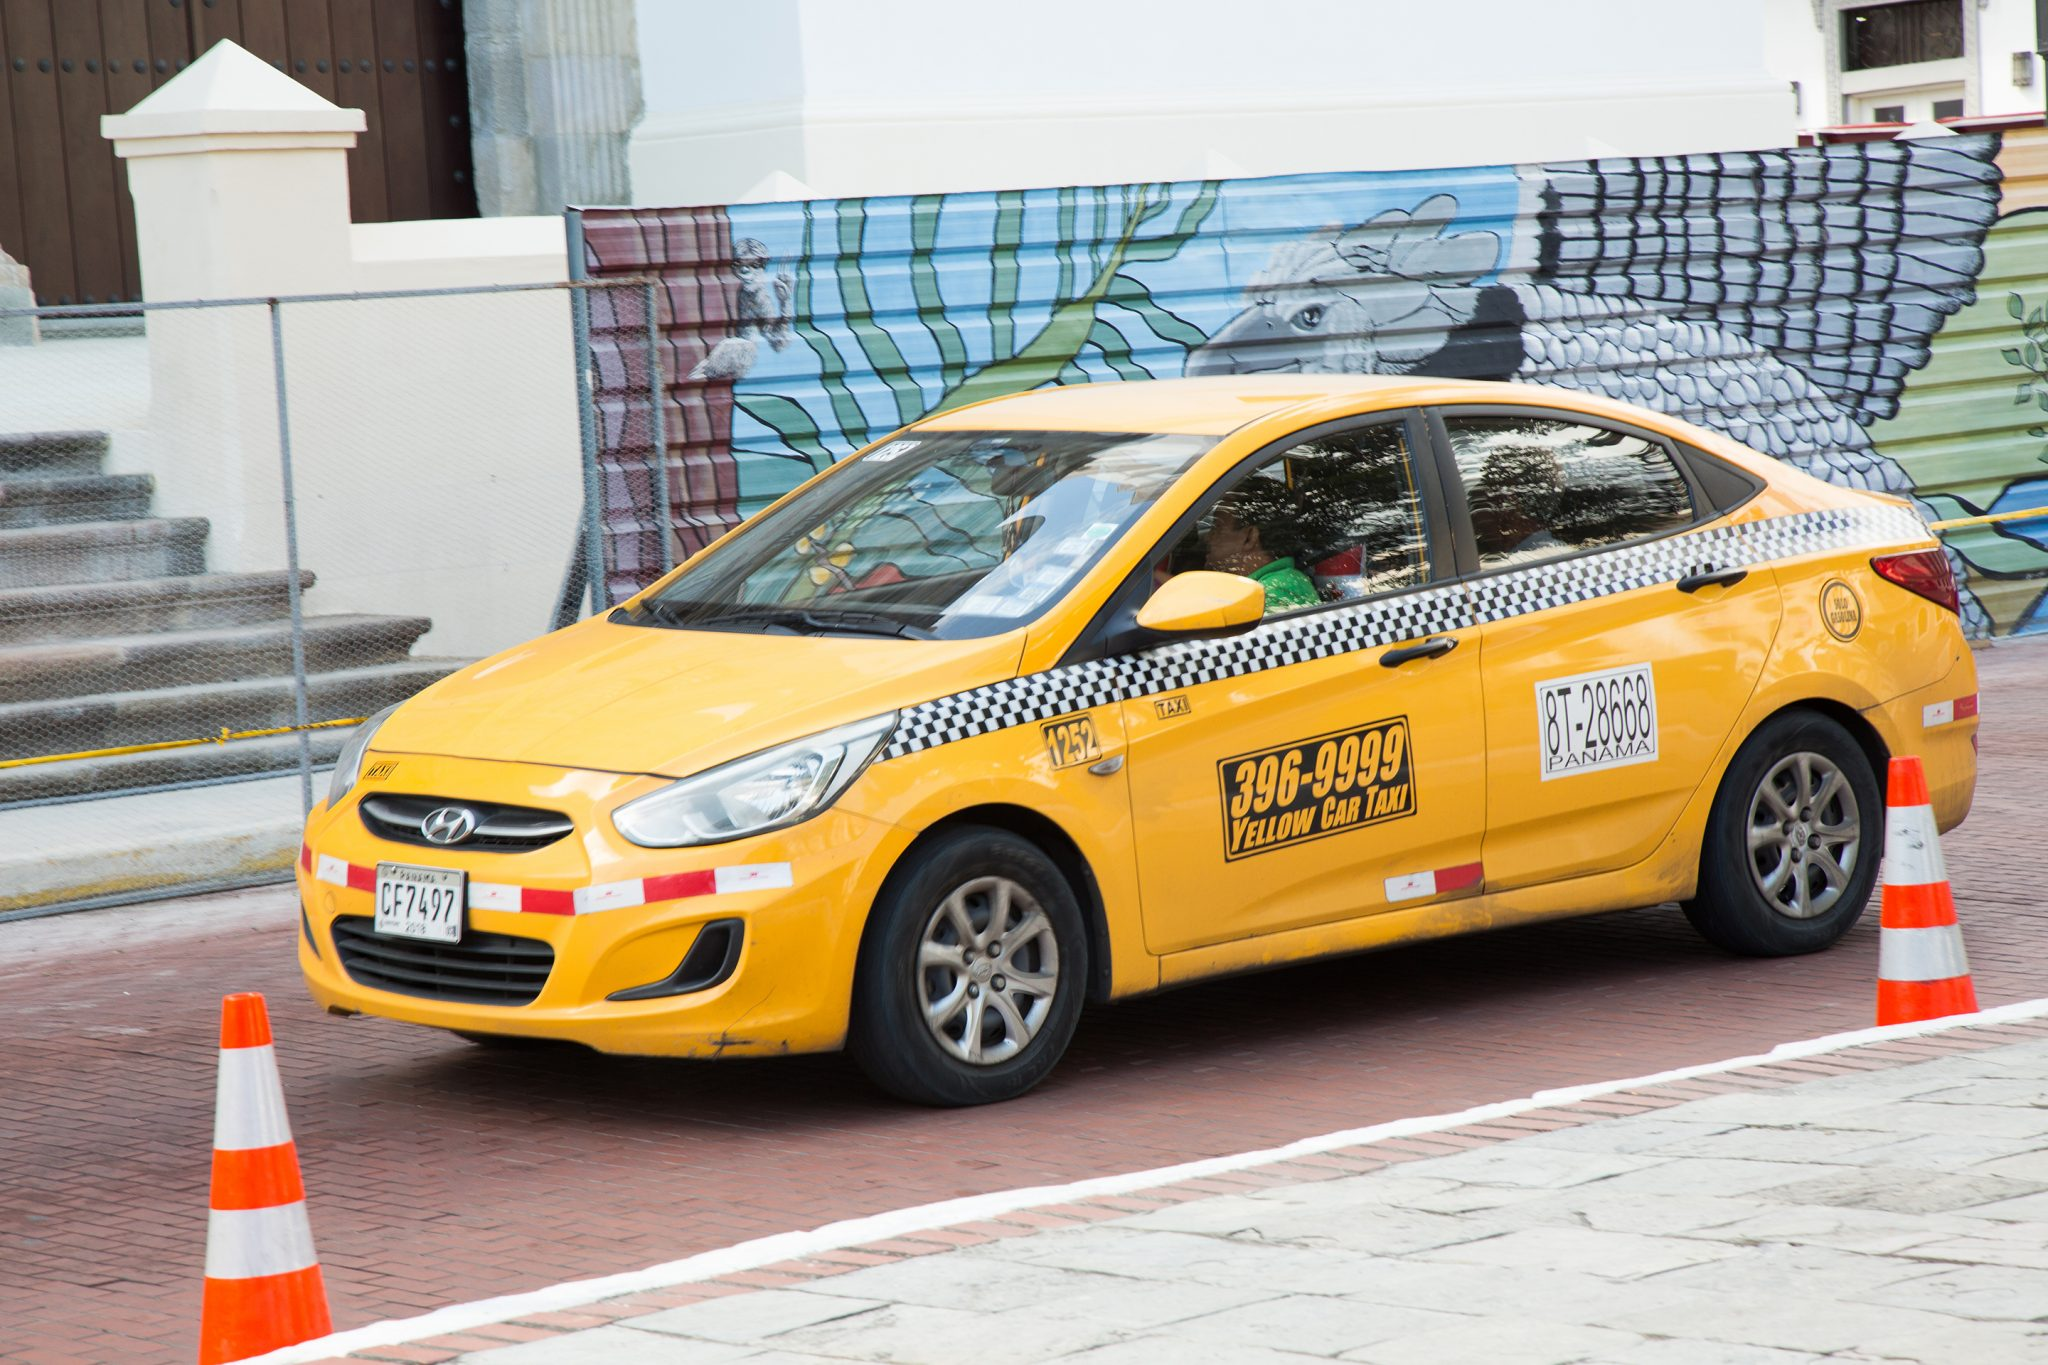 10. Taxis